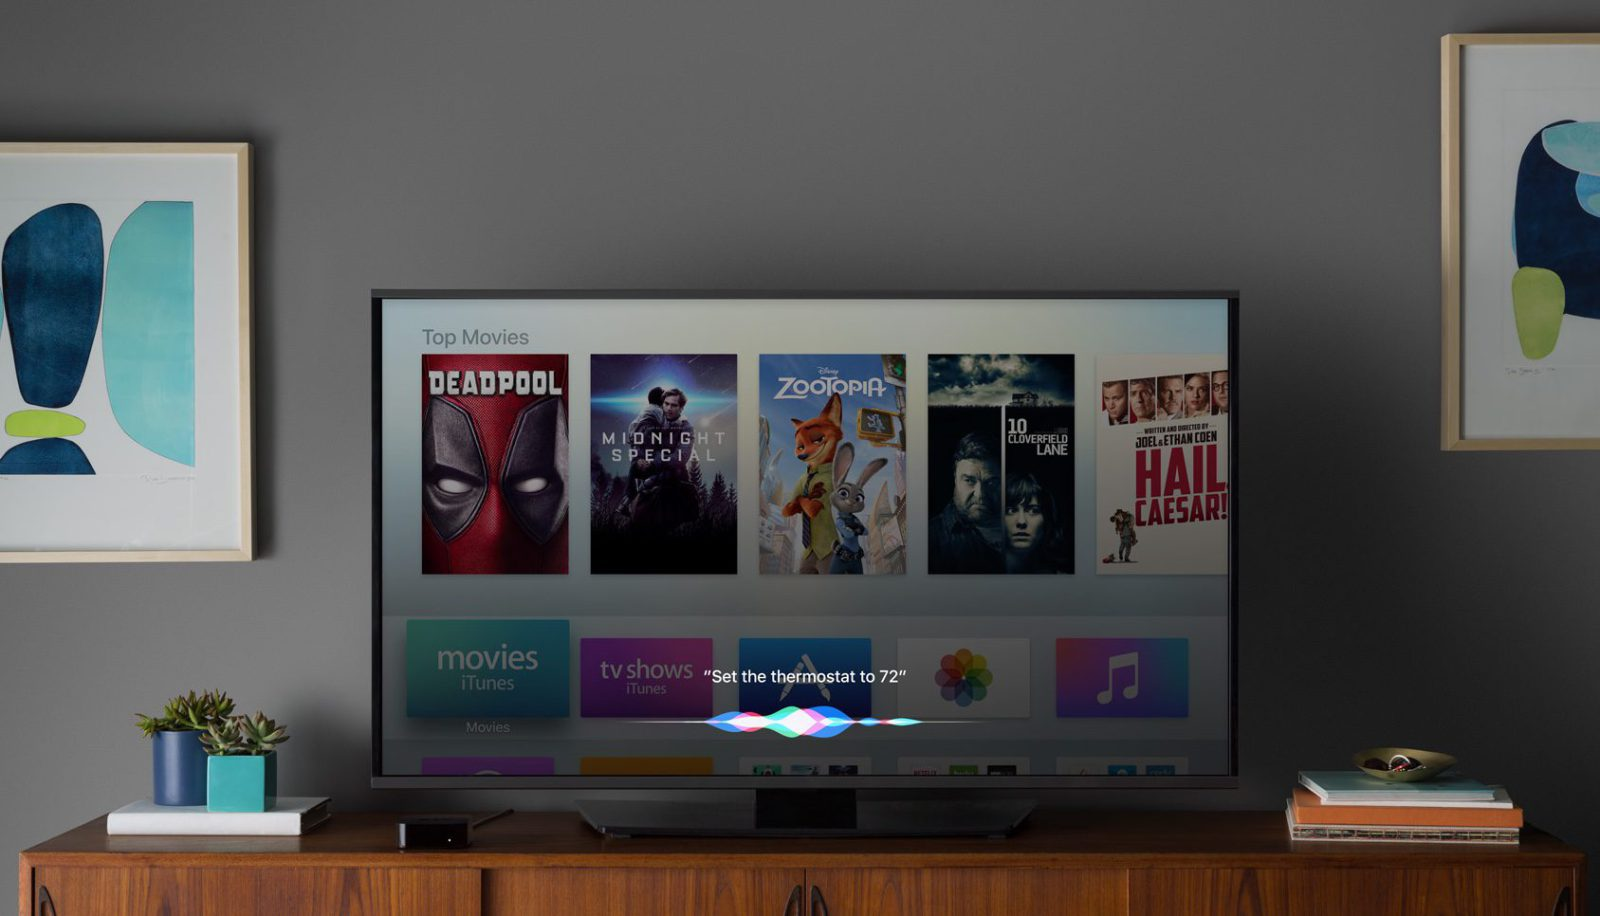 Apple TV 4 Gen 4K - ТВ плеер Apple TV.